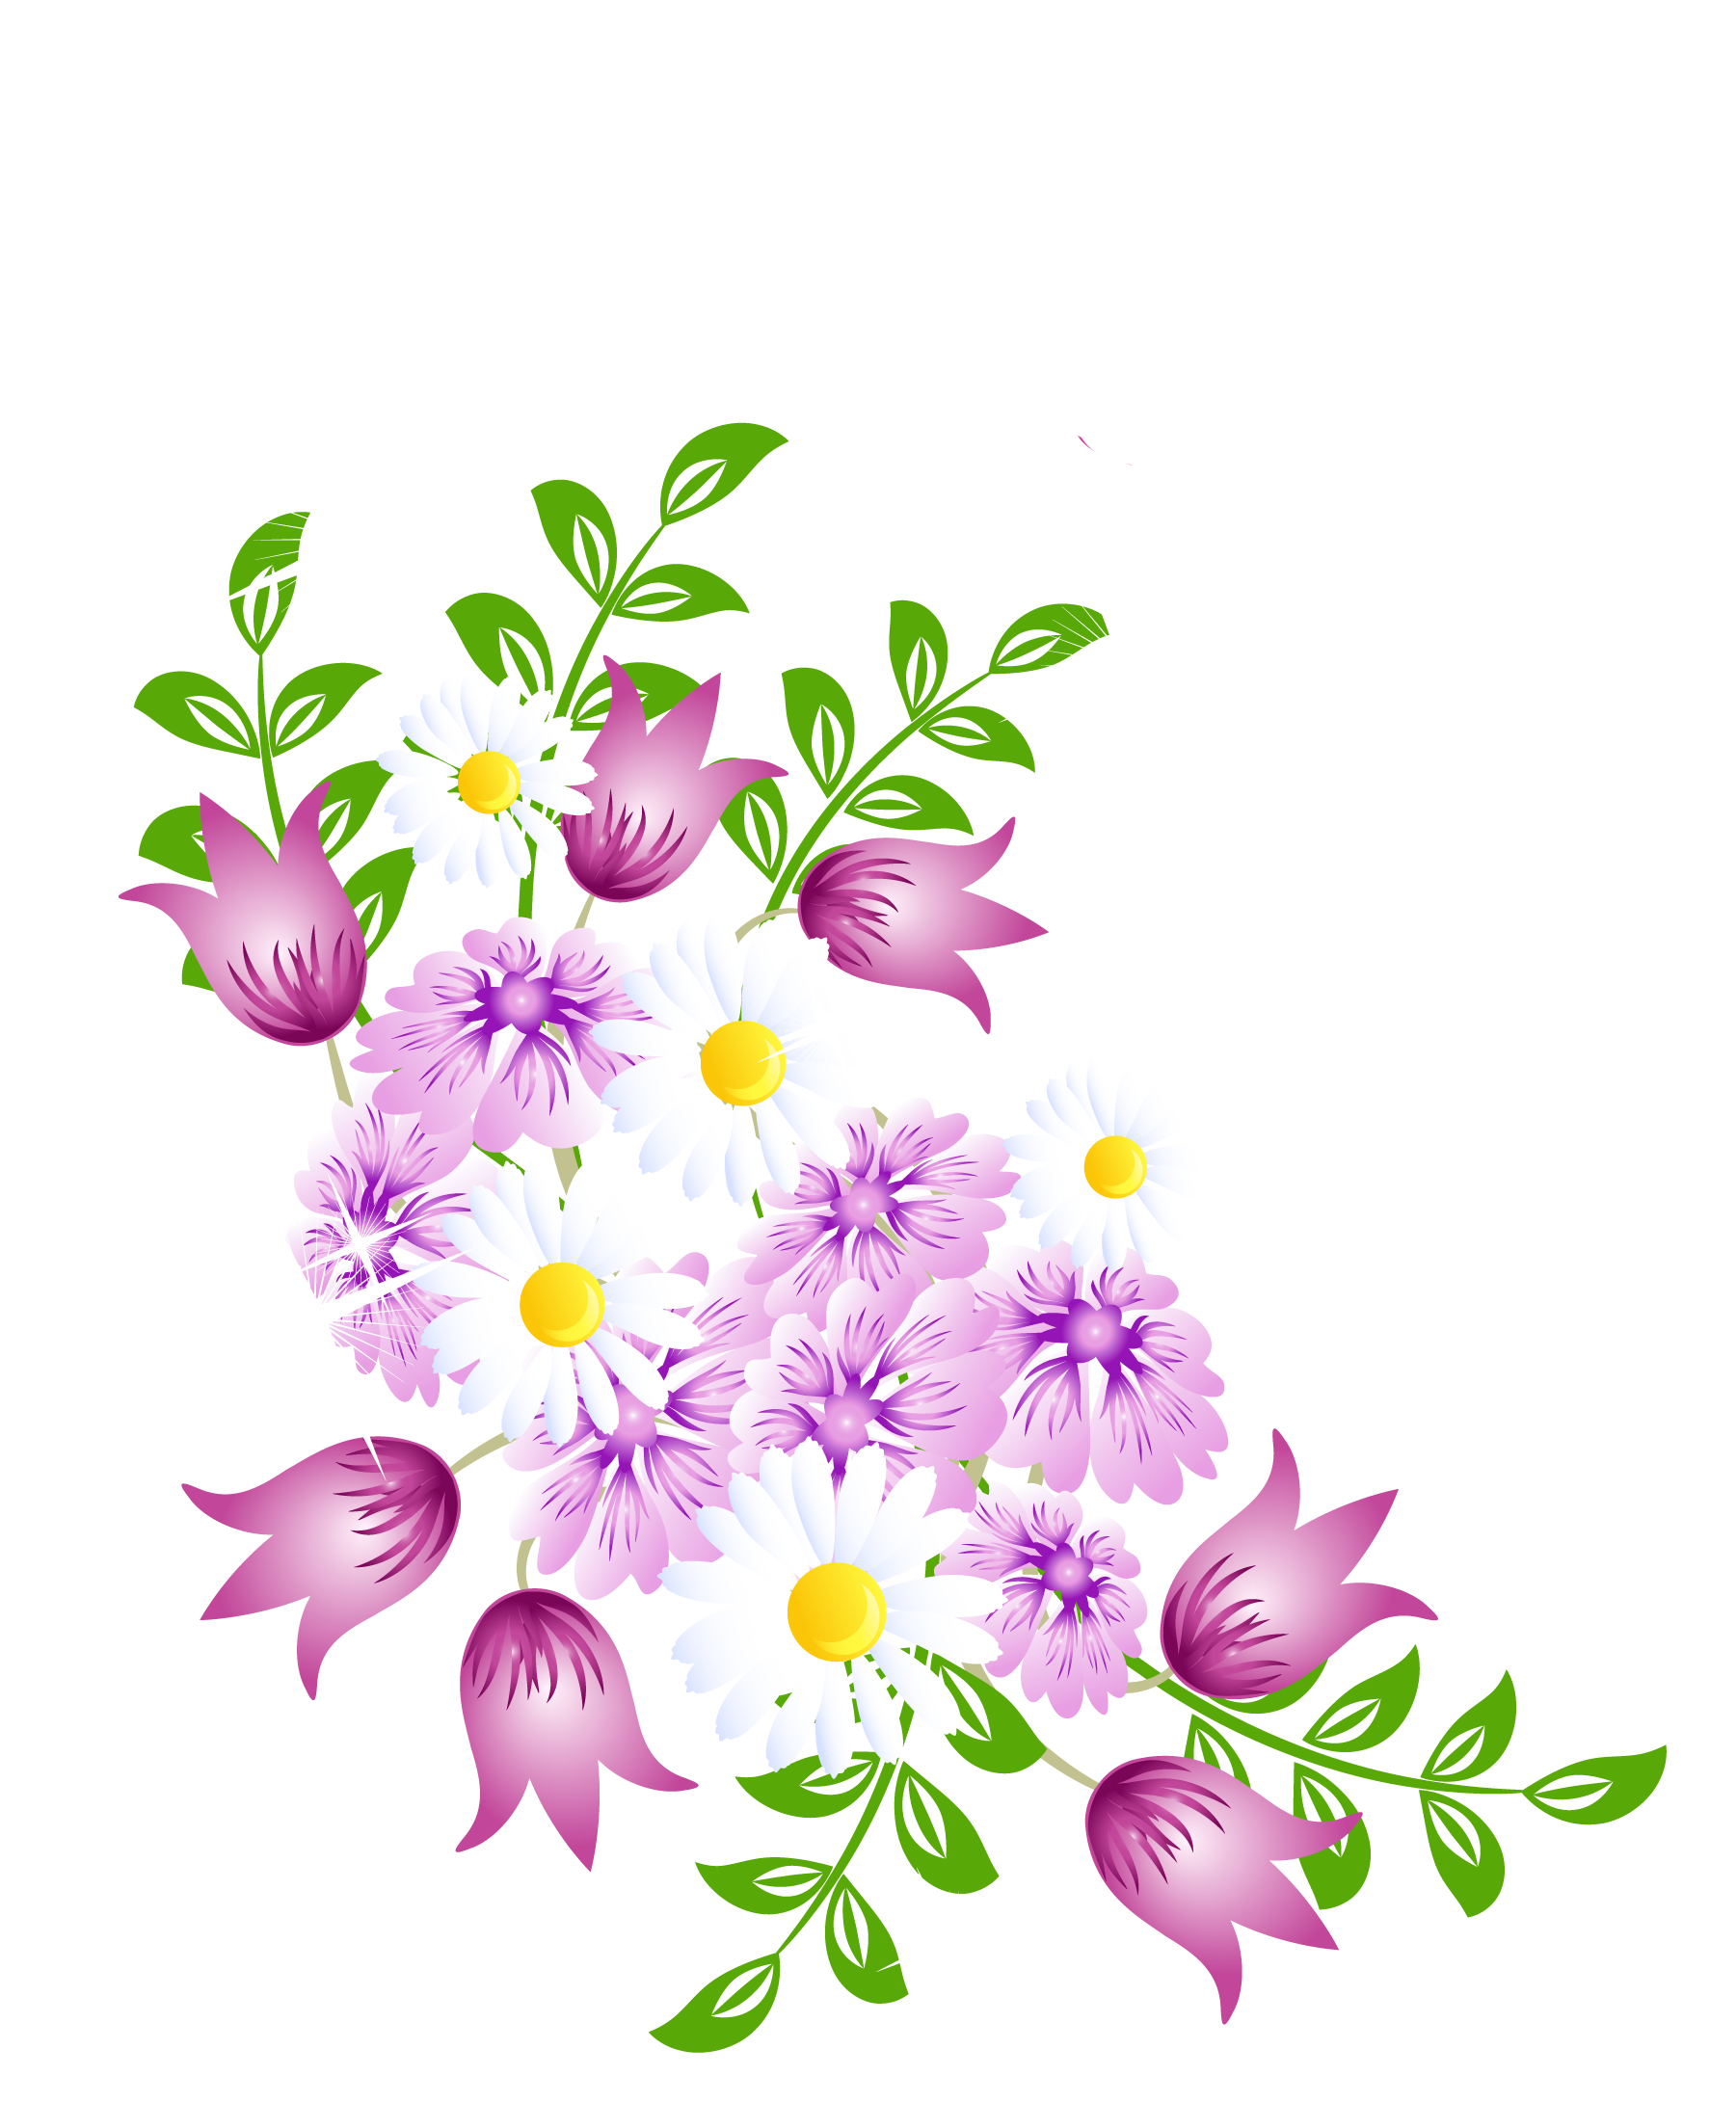 Microsoft clipart spring, Microsoft spring Transparent FREE.